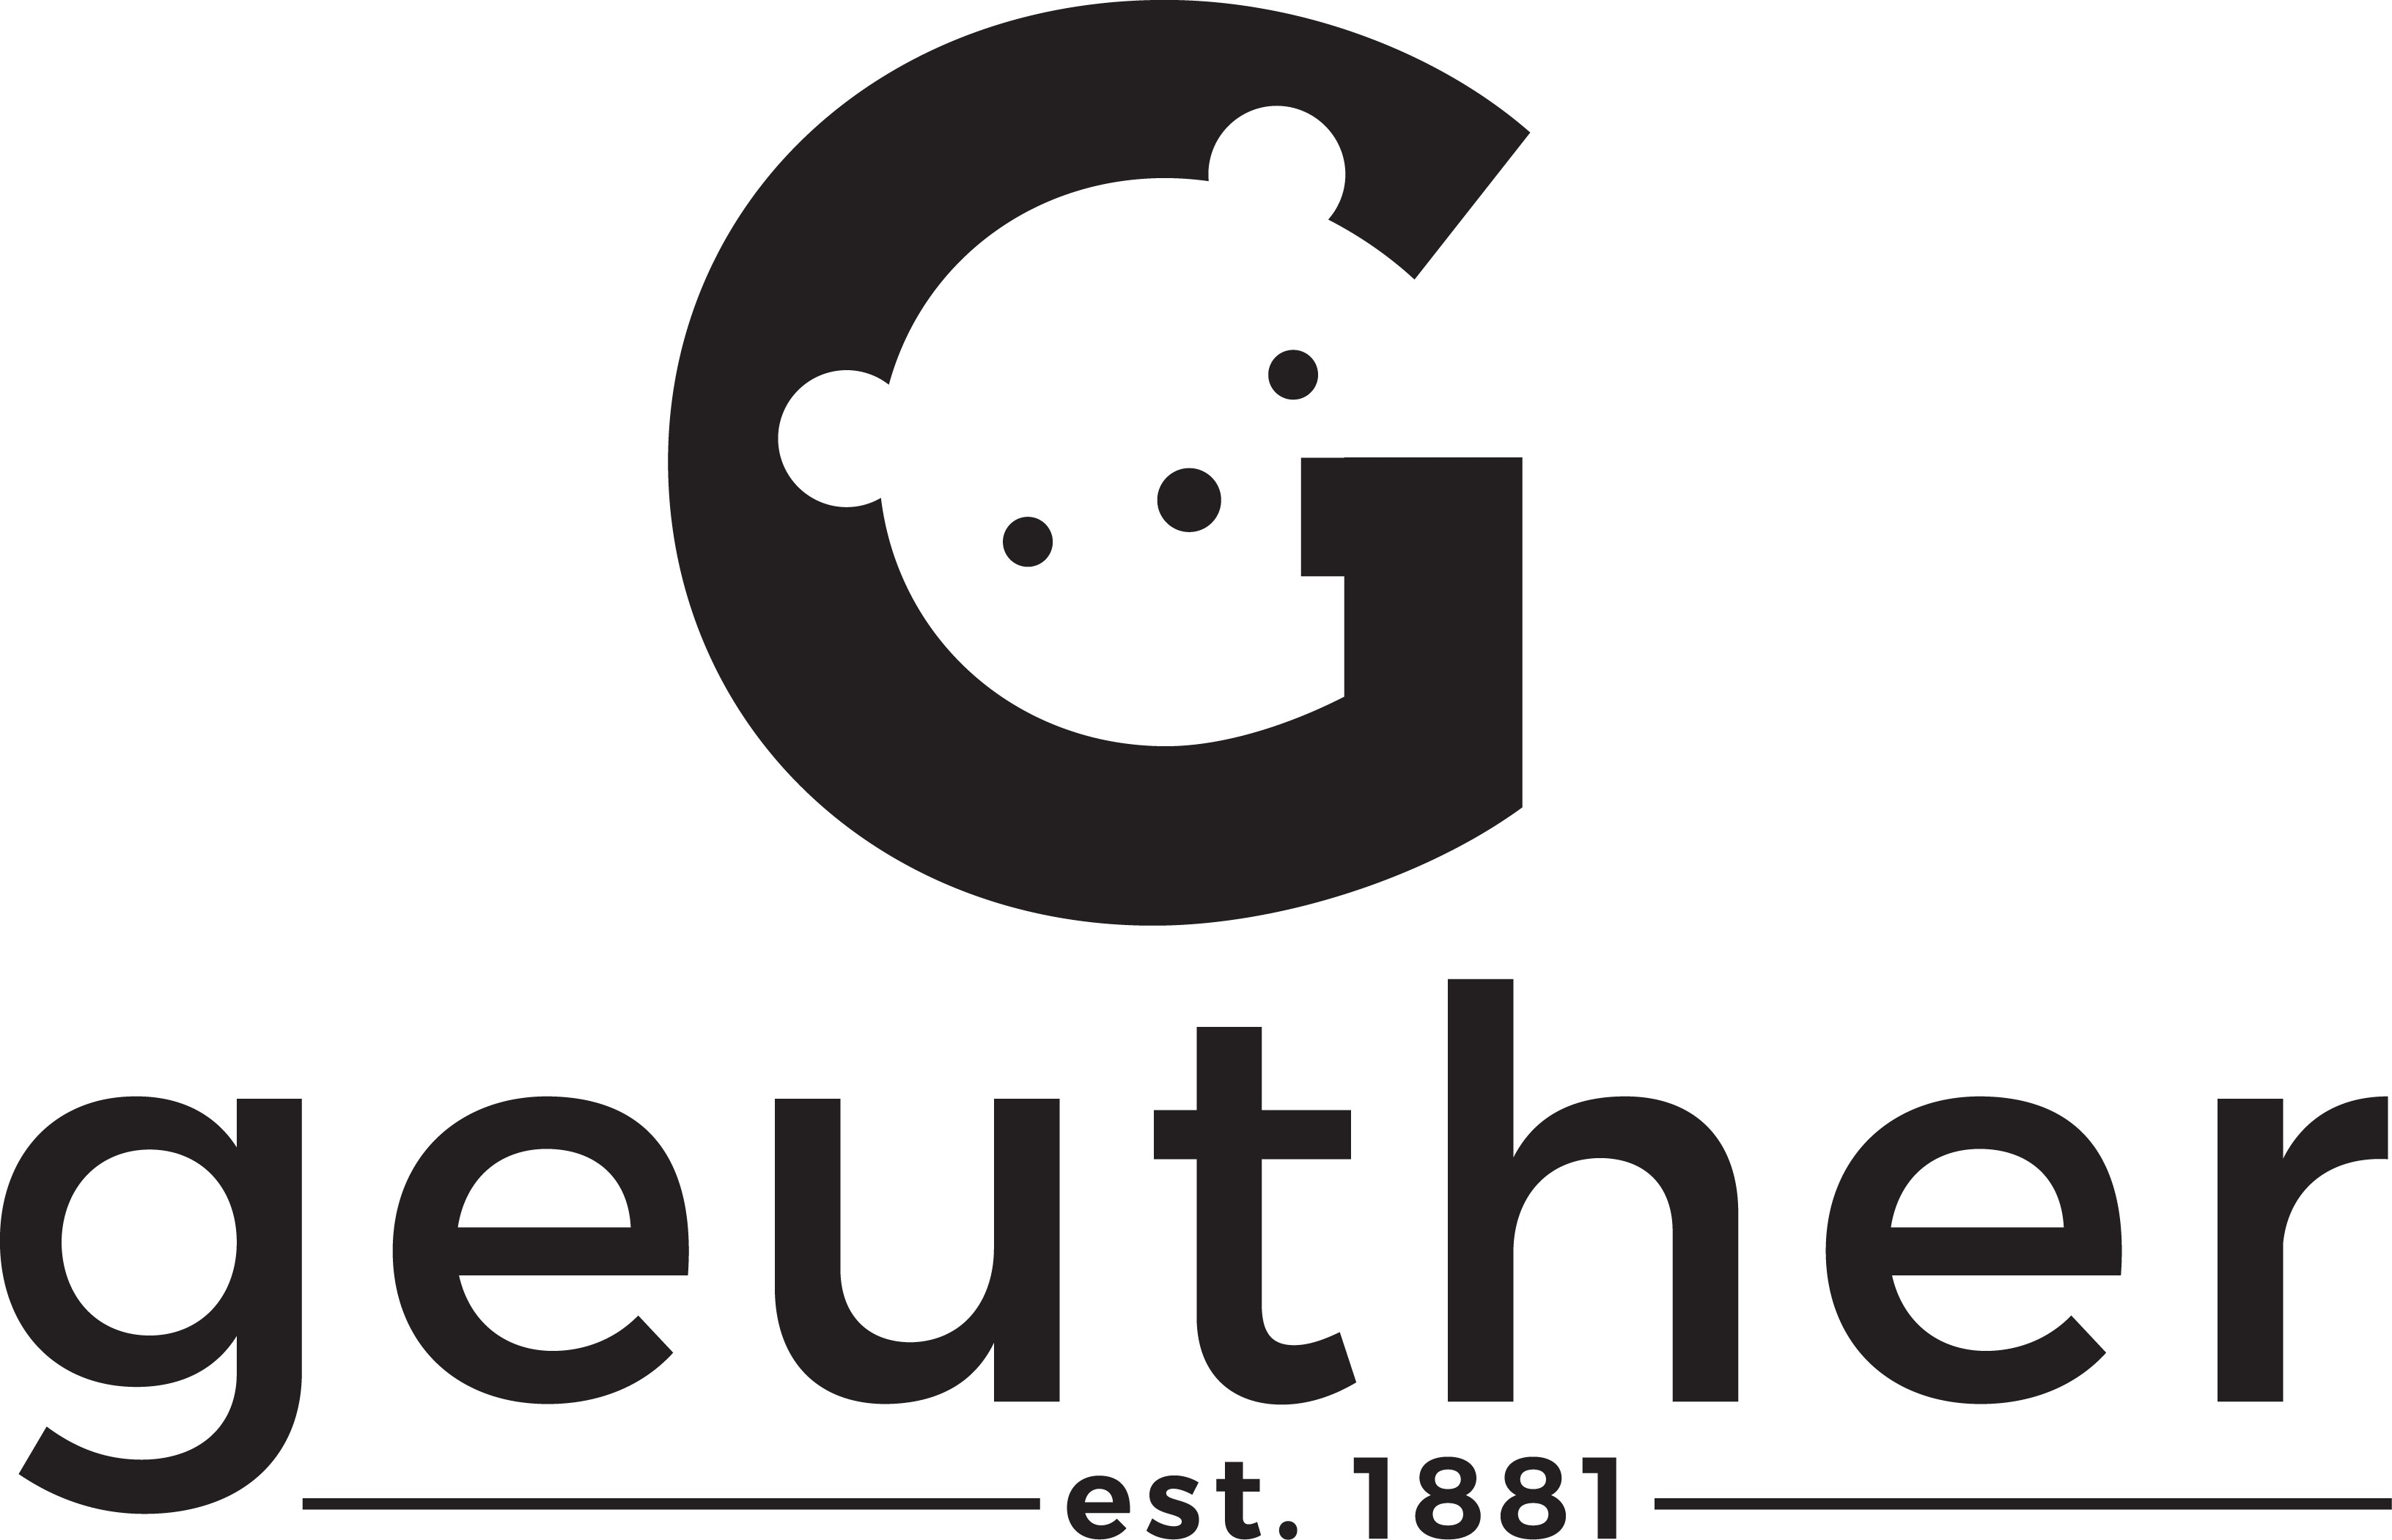 Design a fresh logo for GEUTHER, a kids furniture company.